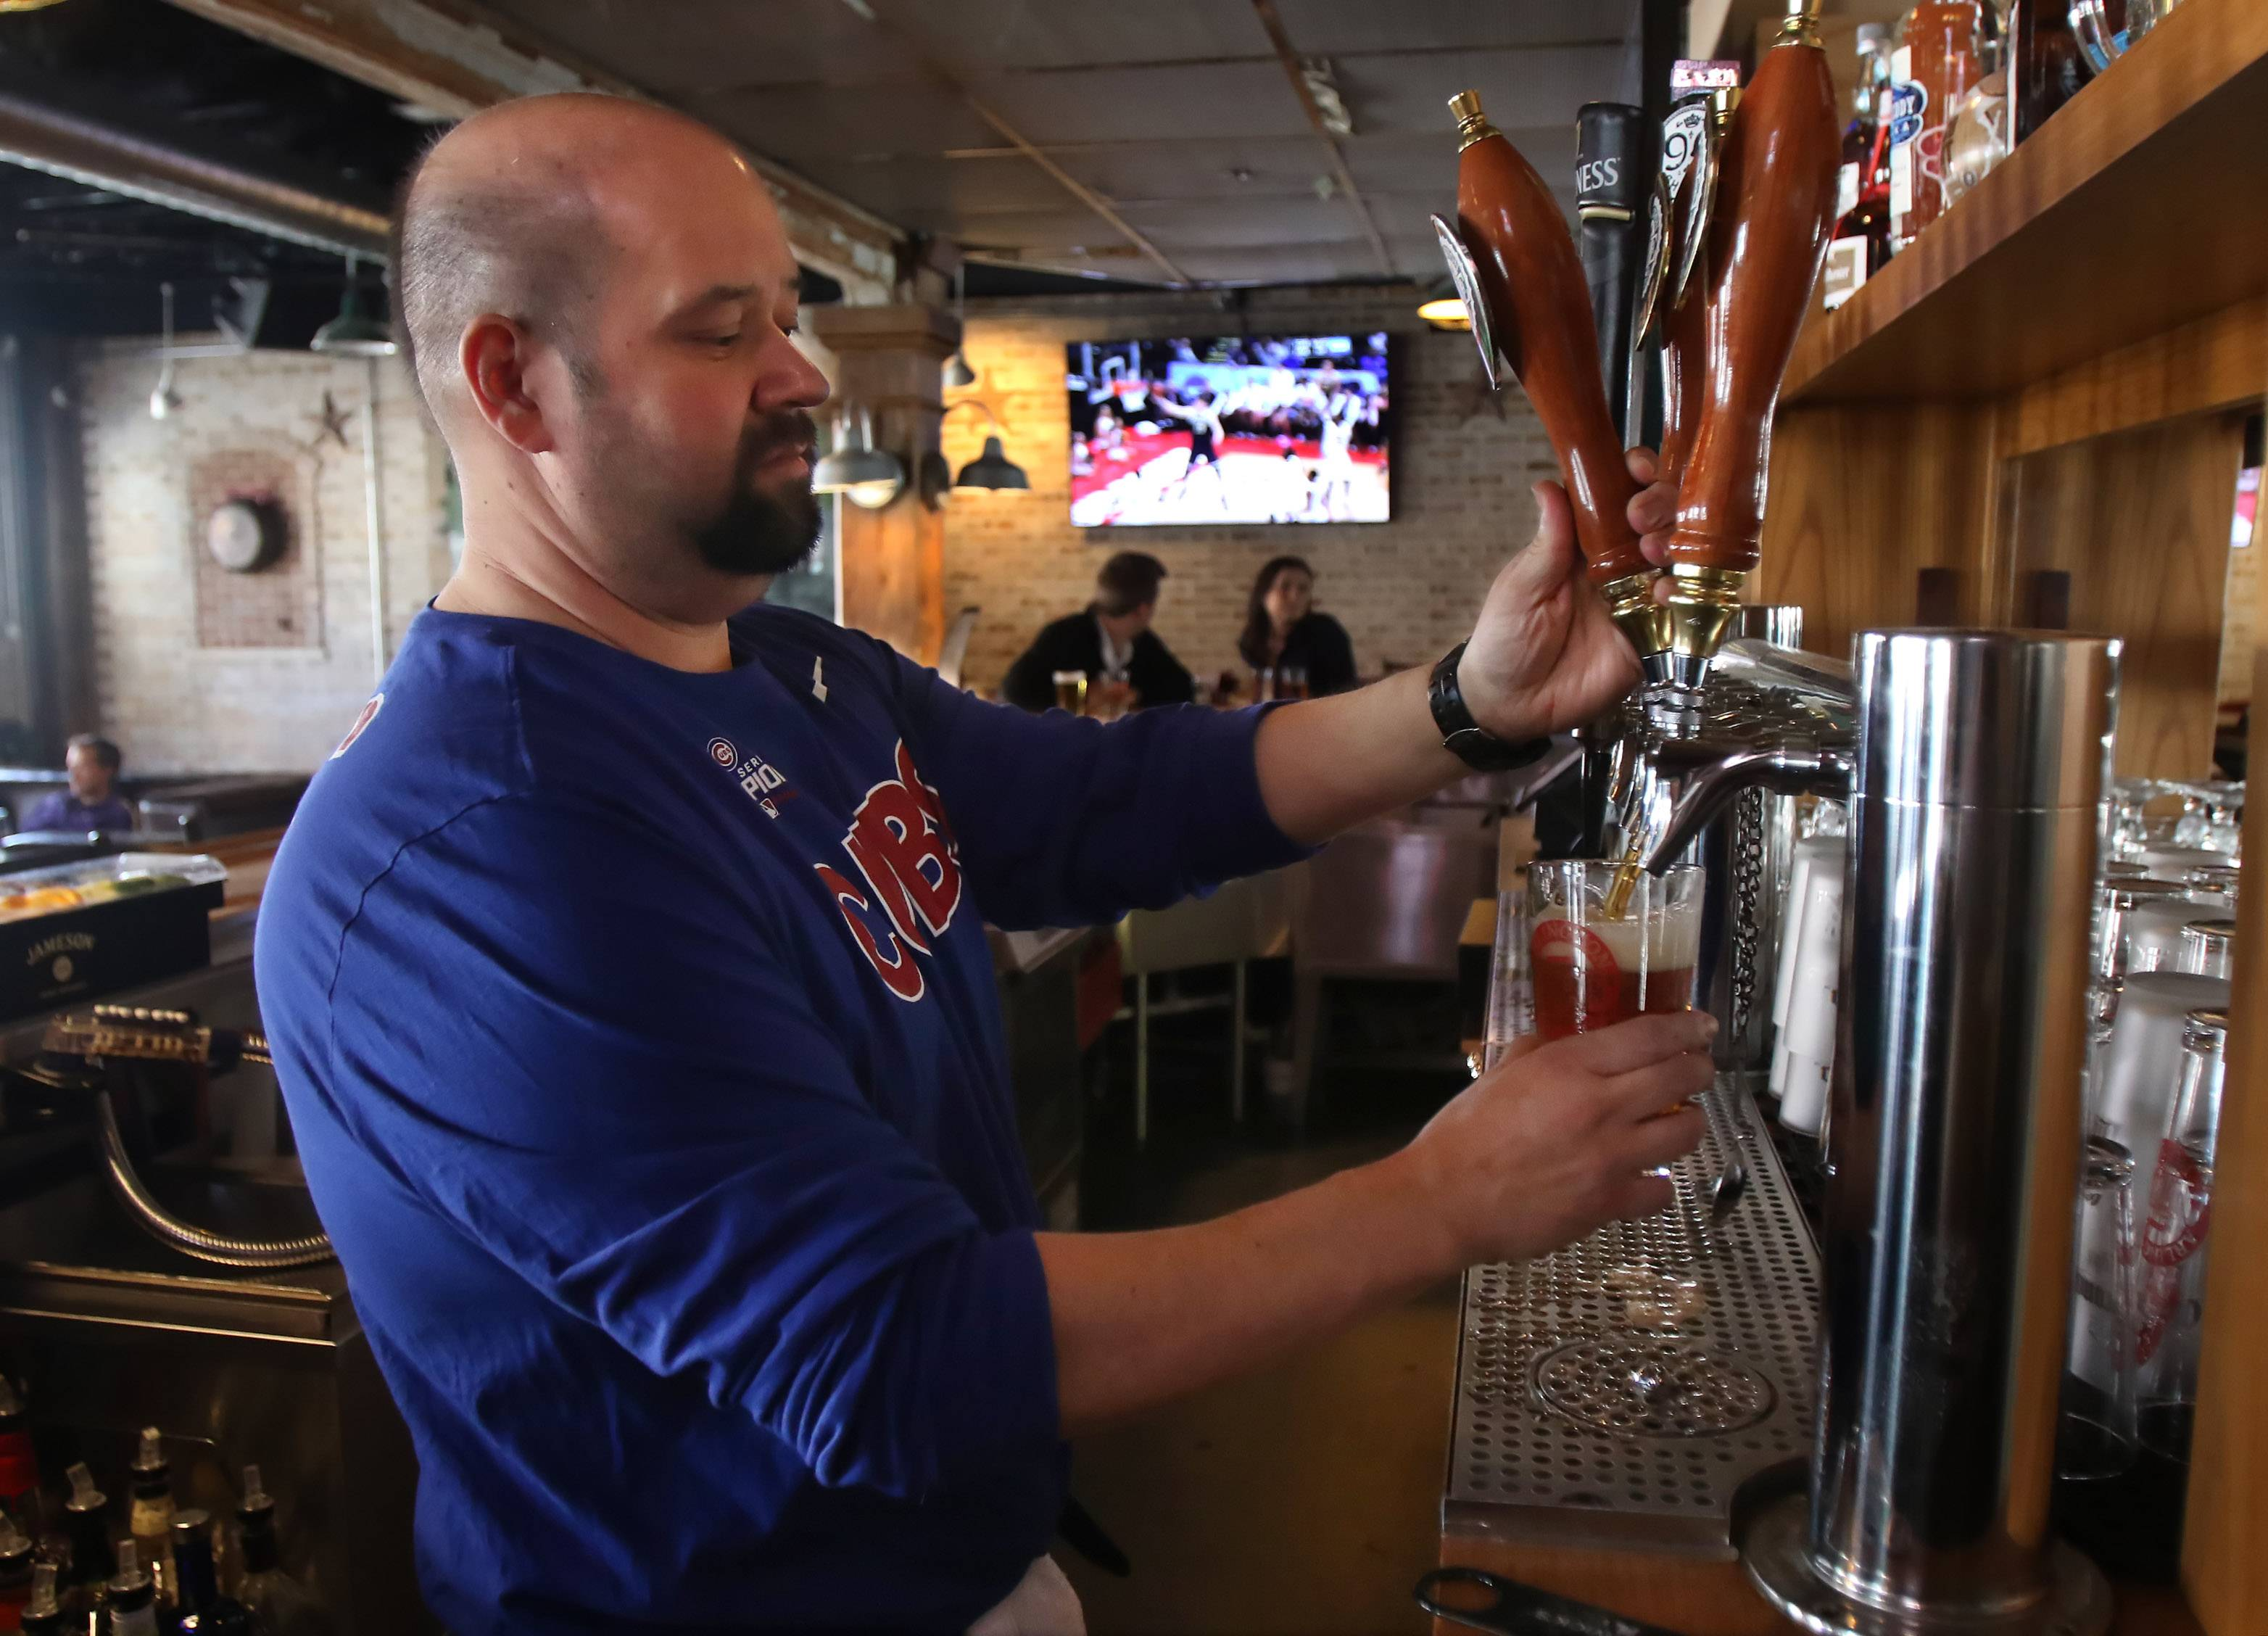 Bartender John Polihronis pours a beer at the Arlington Ale House in Arlington Heights.